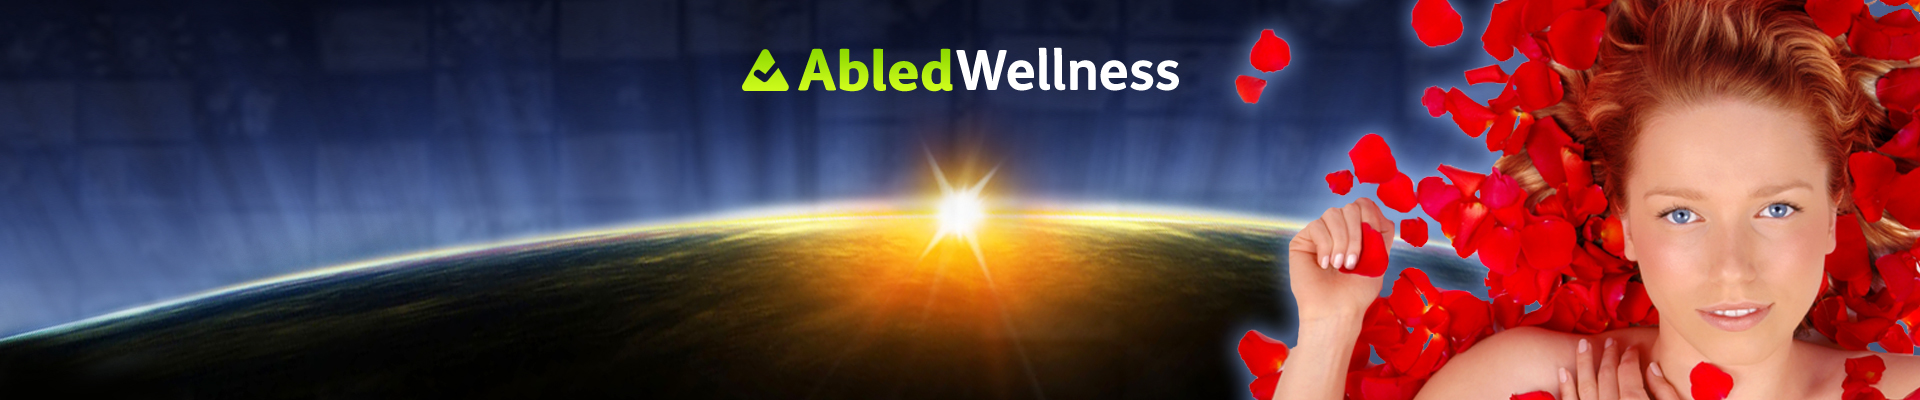 AbledWellness banner shows a young woman laying on a bed of roses